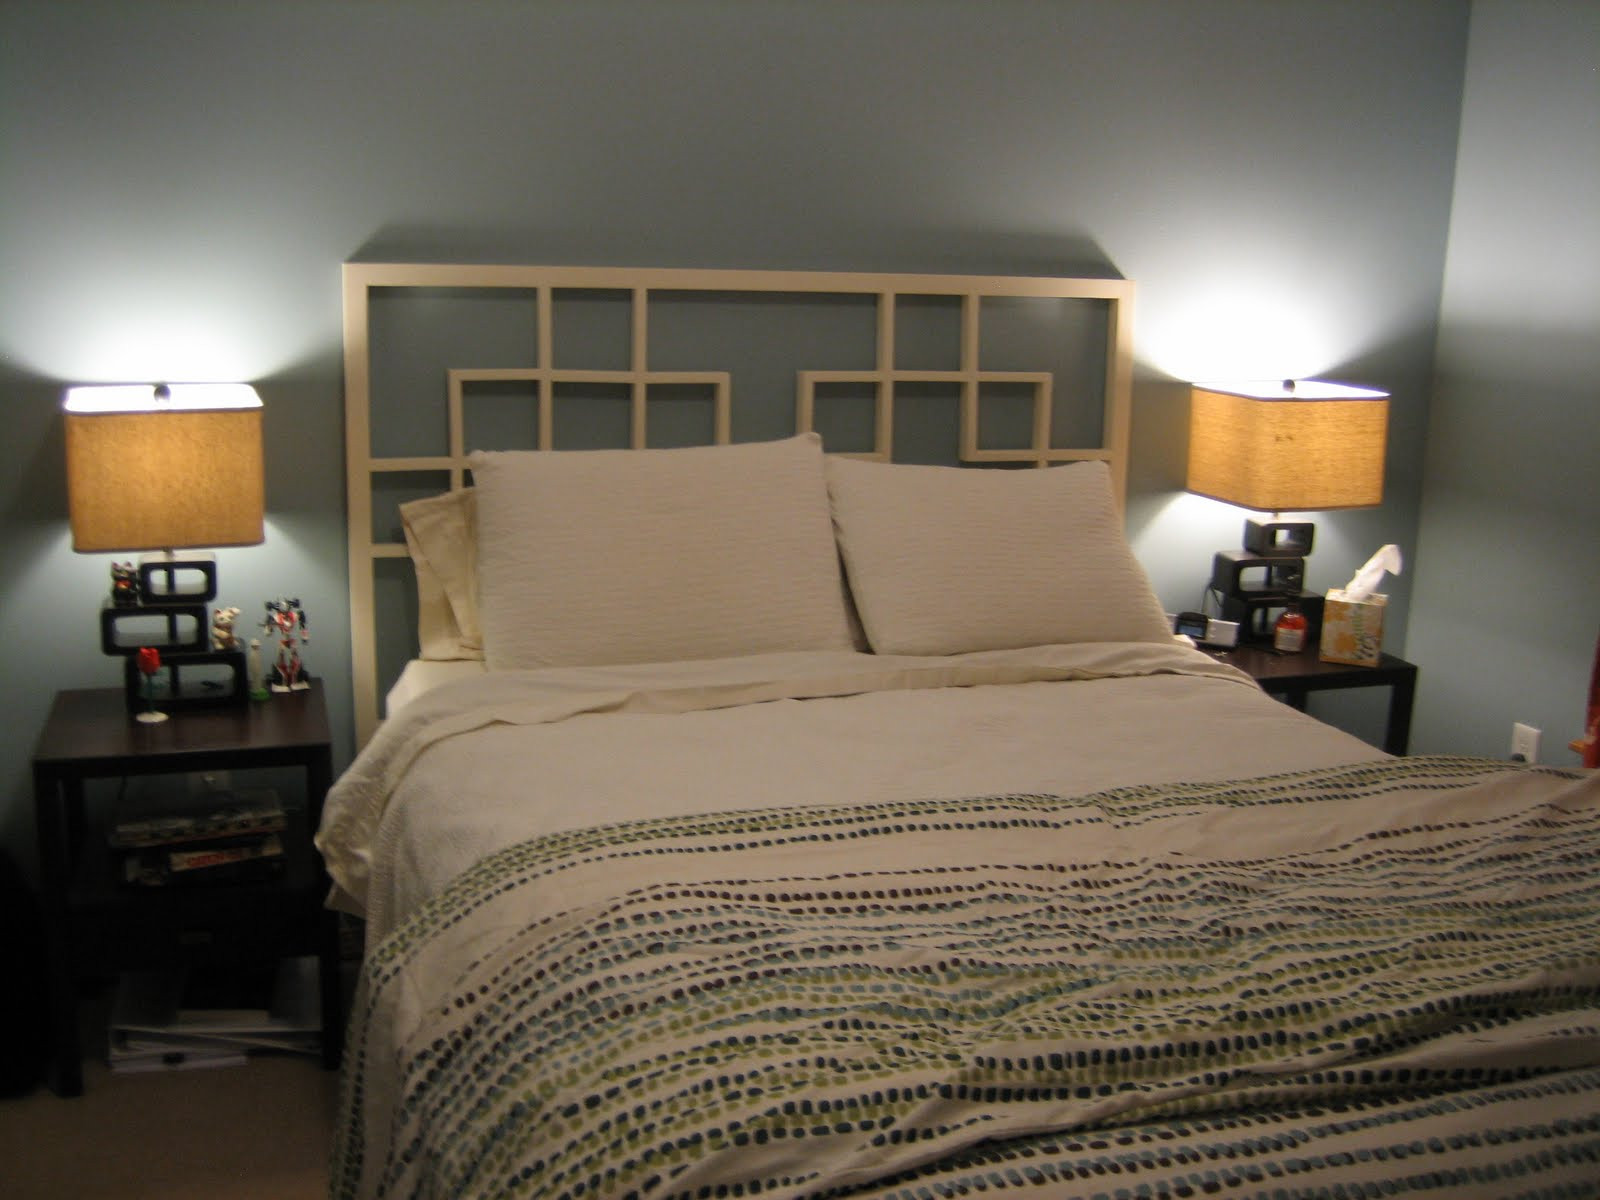 Best ideas about DIY Headboards For Queen Beds . Save or Pin Ana White Now.